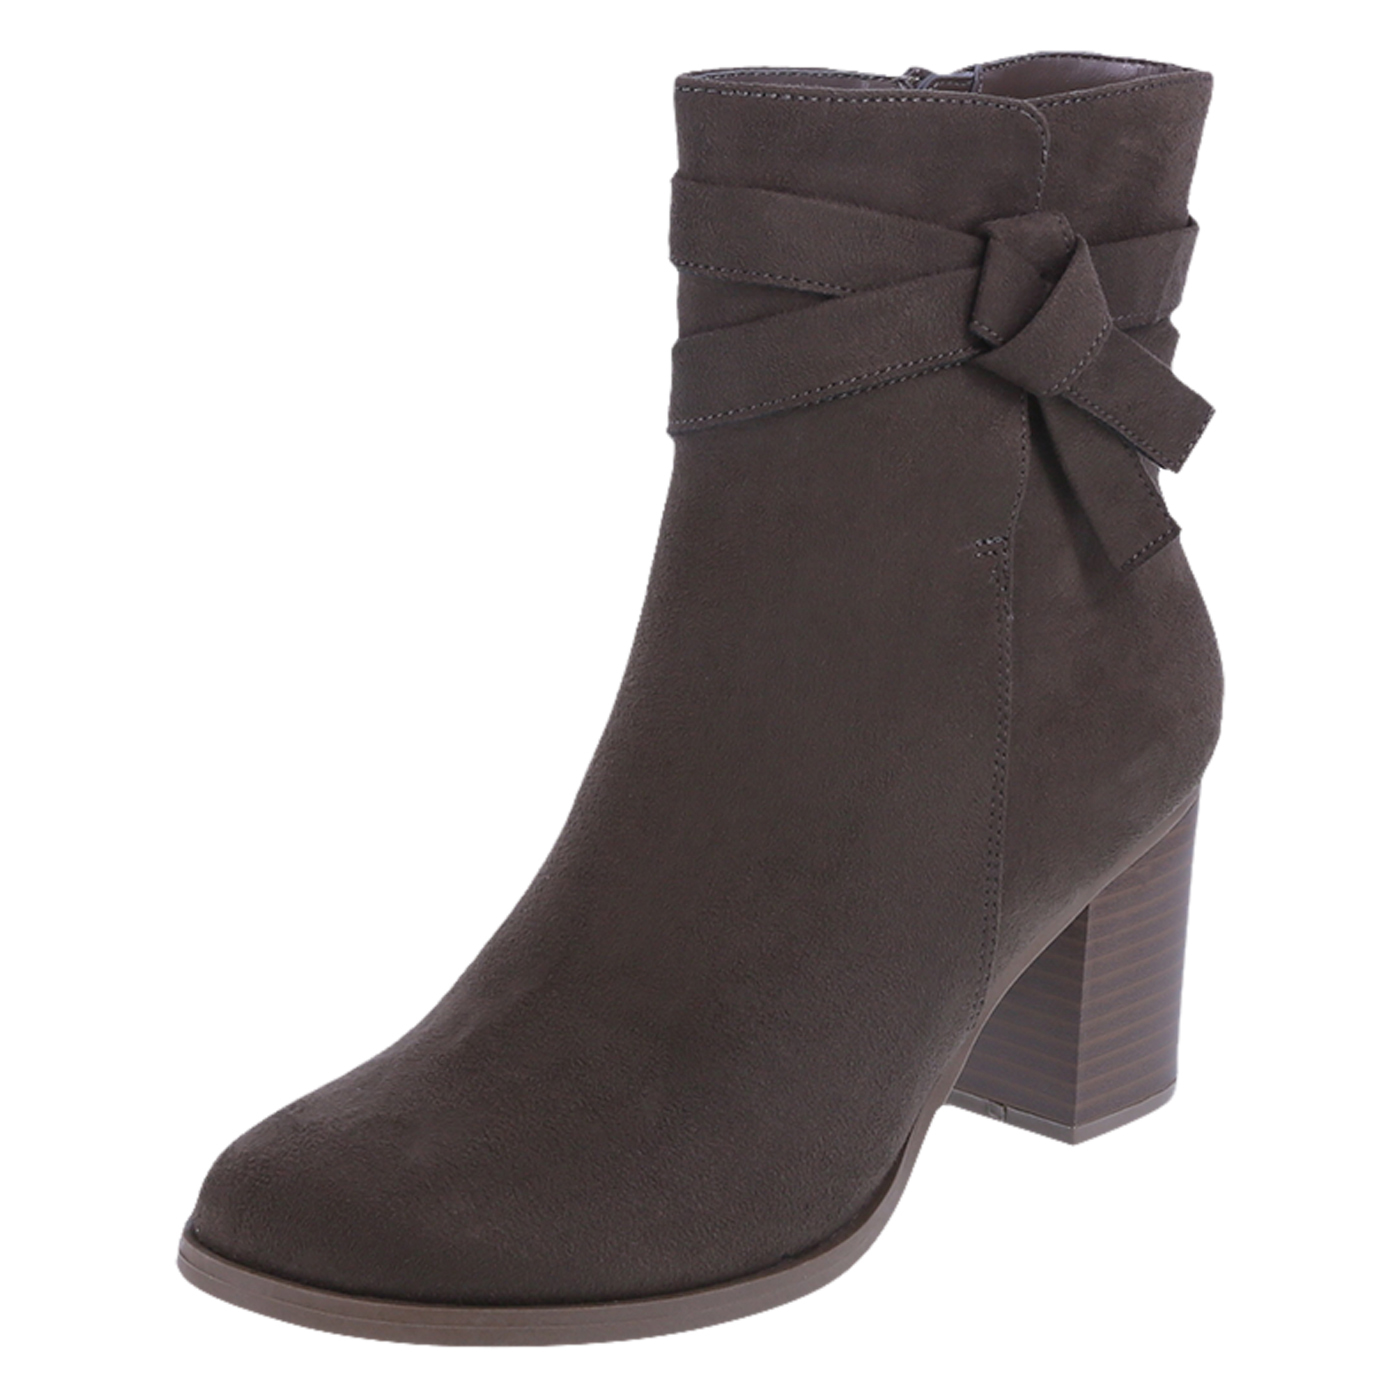 womens boots womenu0027s mallory side tie boots, dark taupe suede rxlmpzf